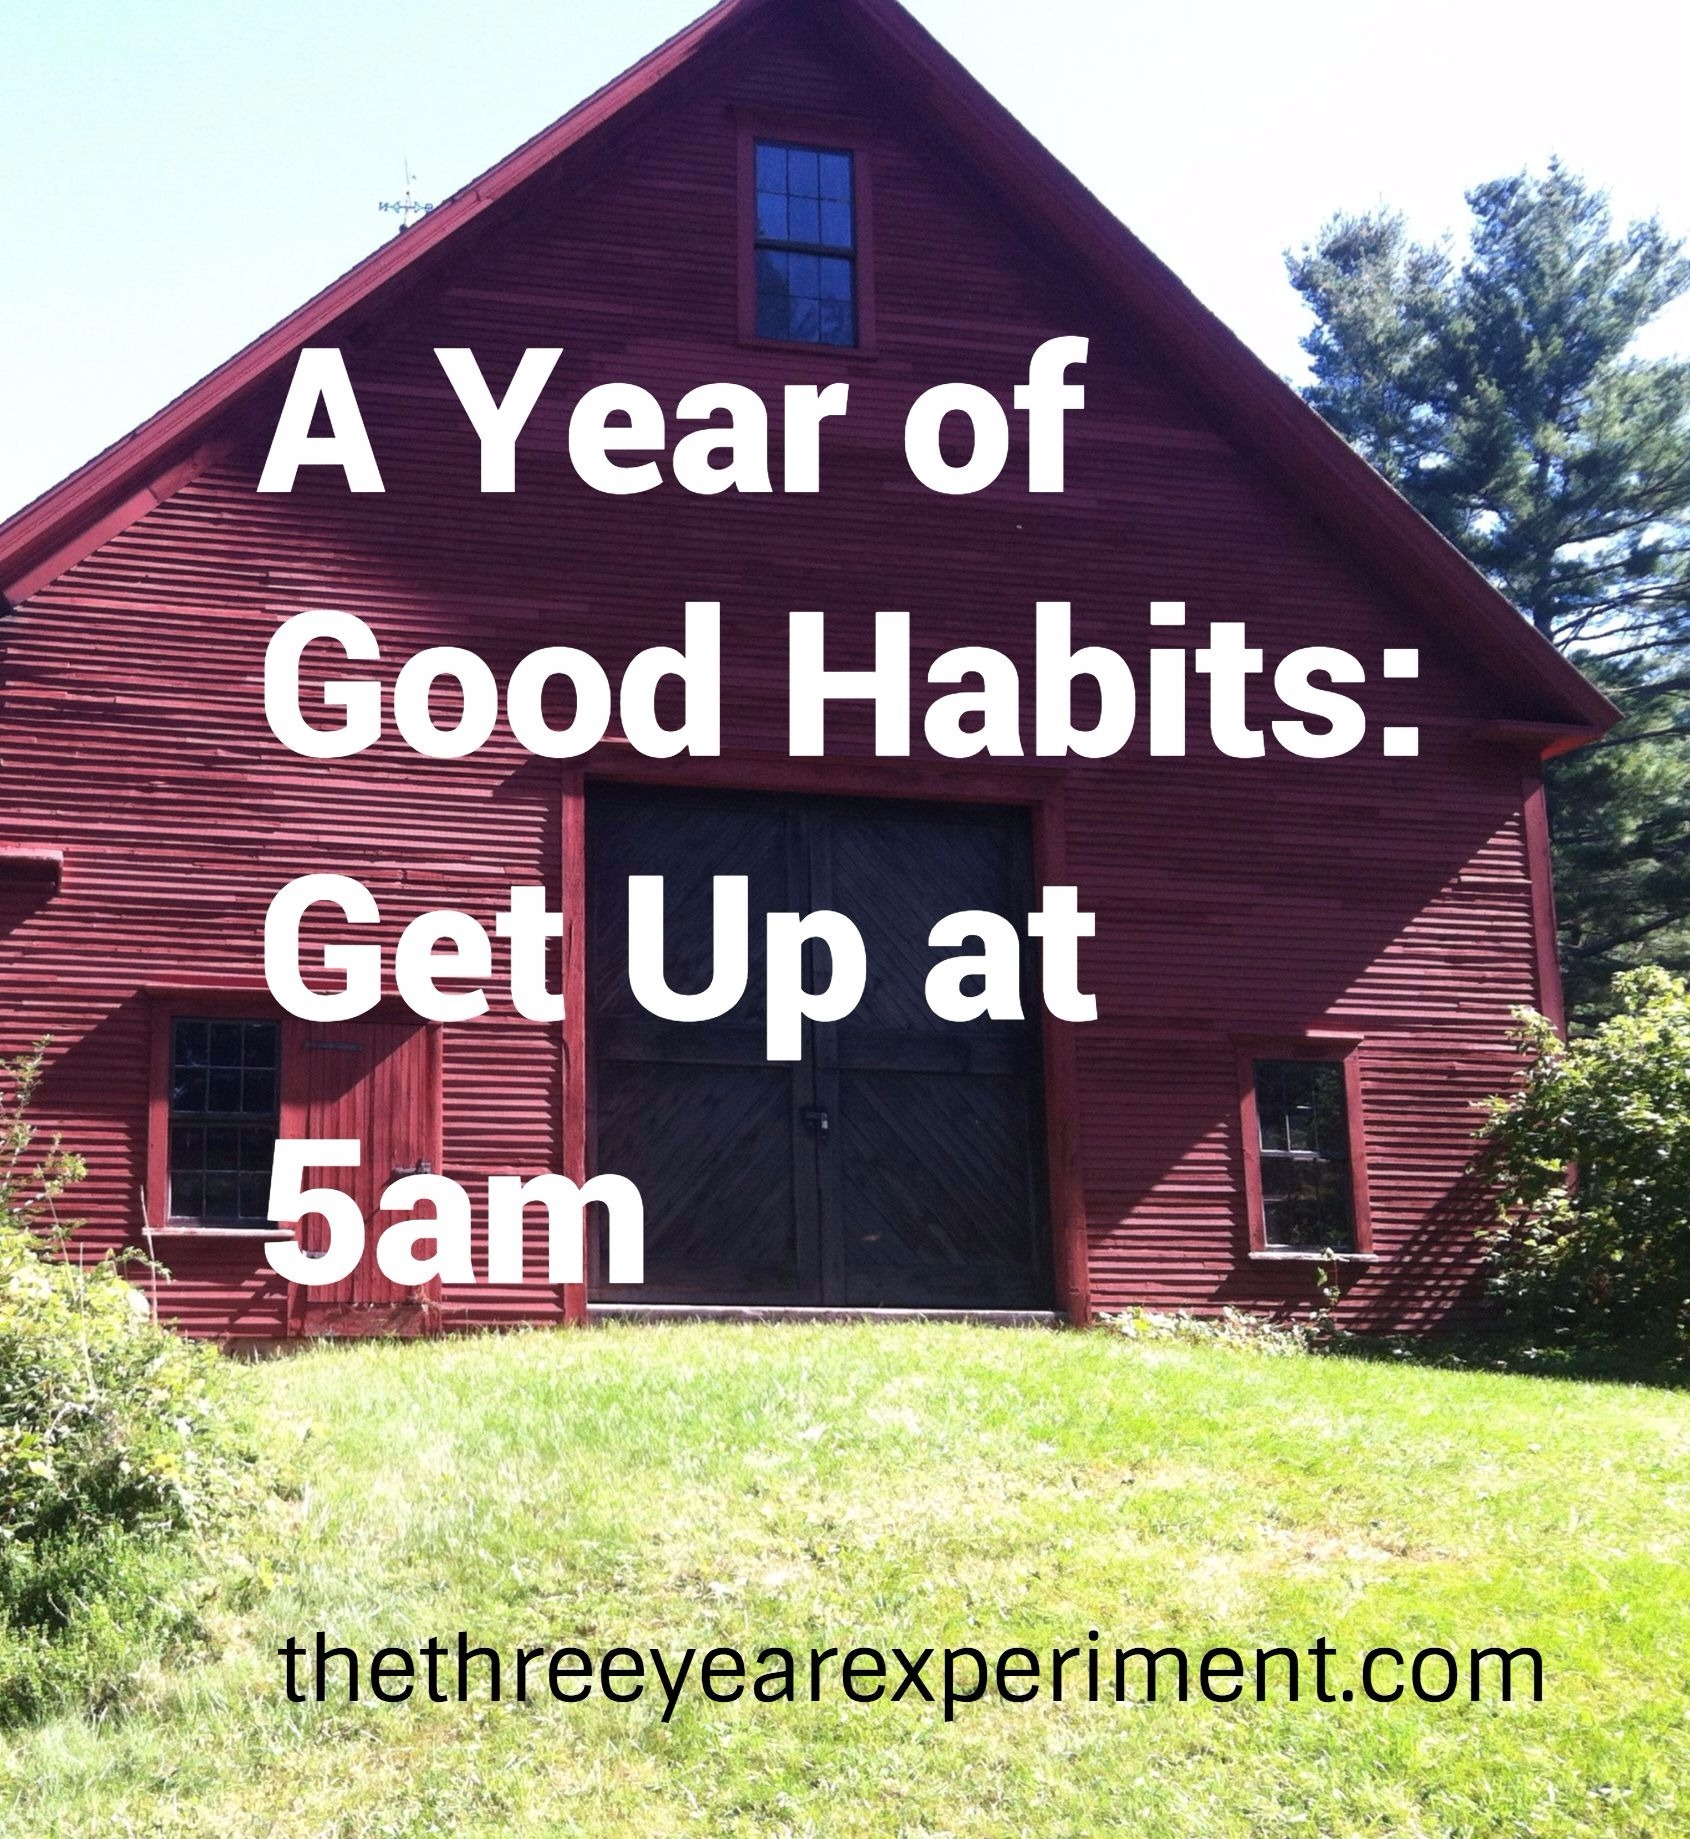 A Year of Good Habits: Get Up at 5am---www.thethreeyearexperiment.com